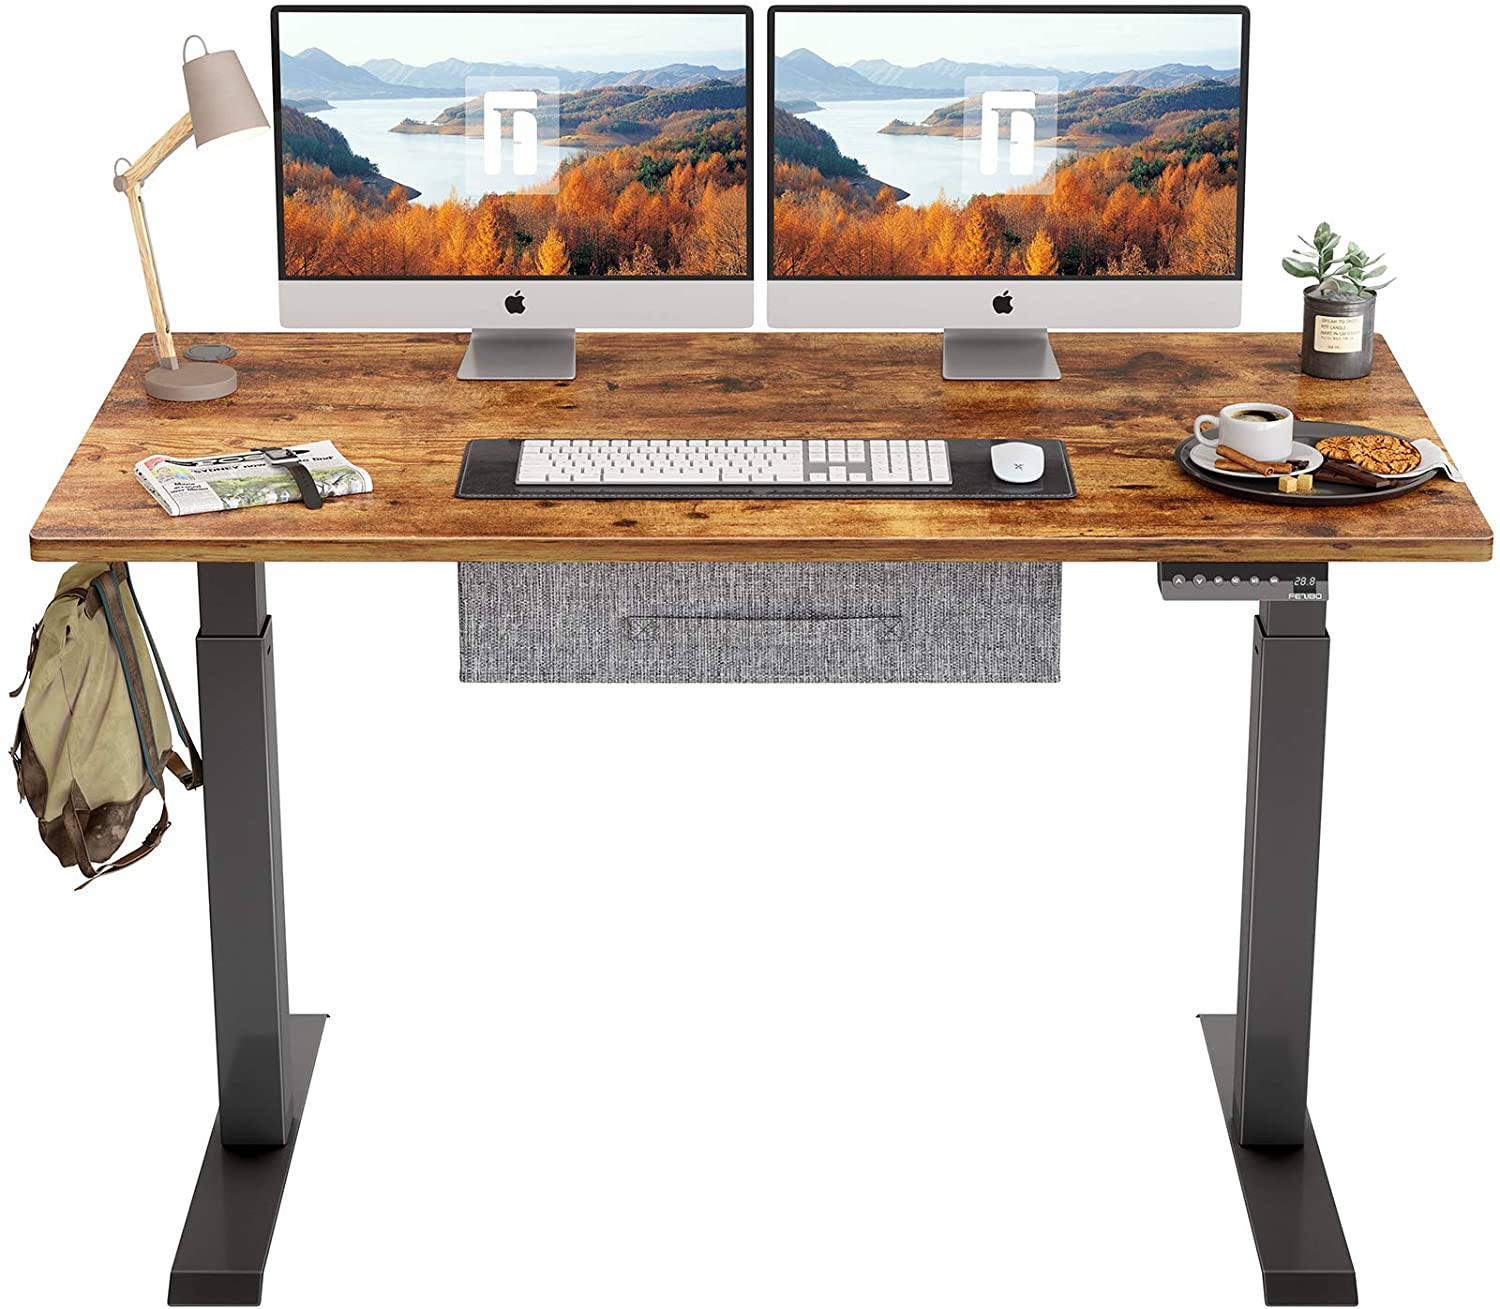 Review of FEZIBO Electric Height Adjustable Standing Desk with Drawer, 48 x 24 Inches Splice Board